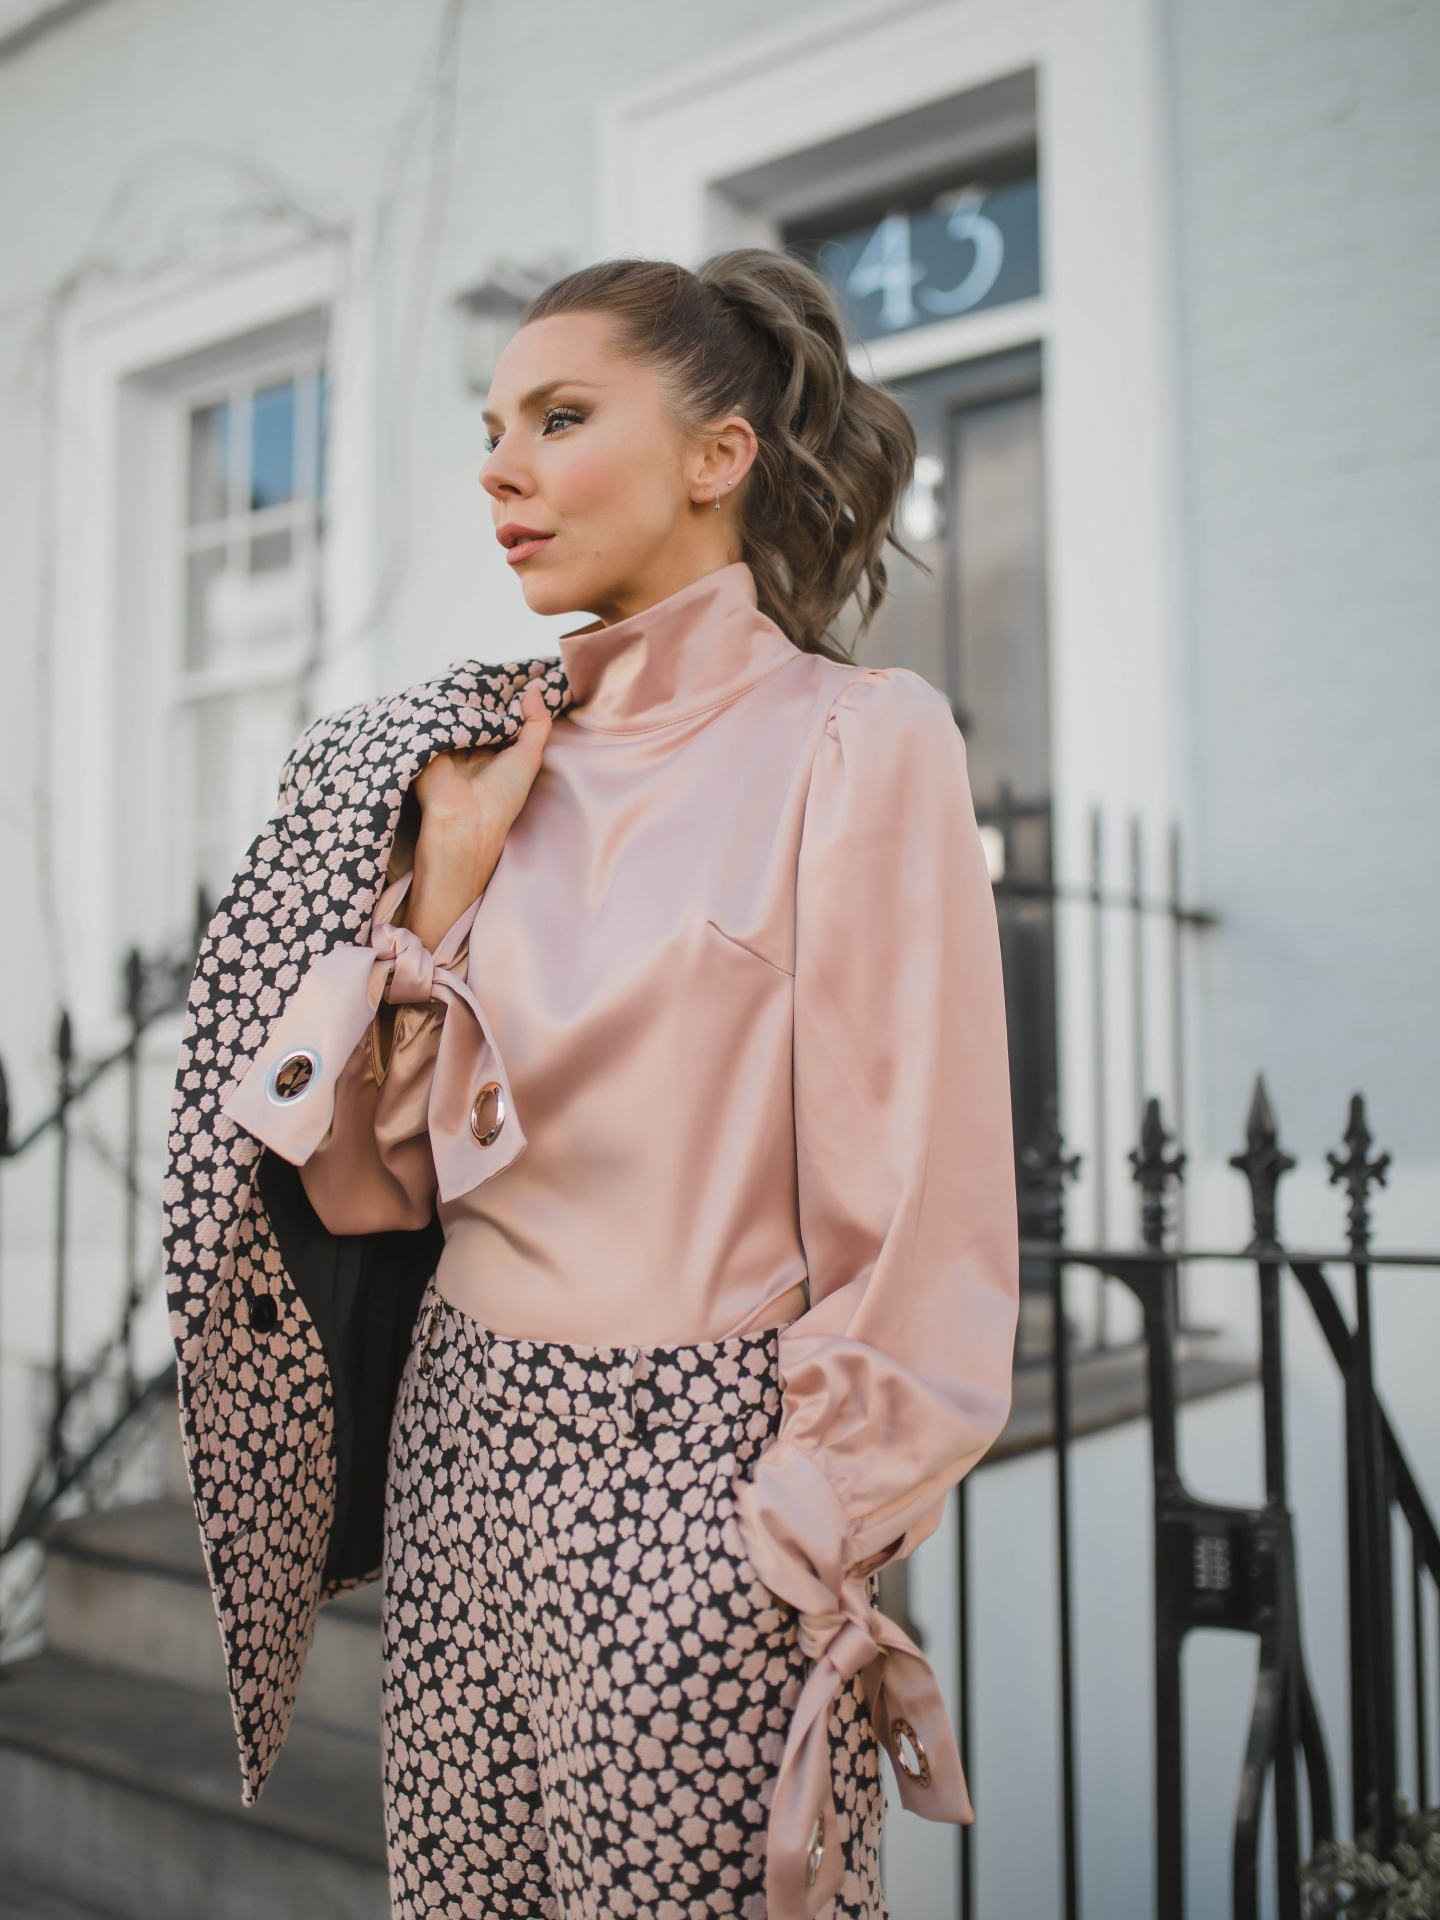 novo london, fashion, style, evening wear, designer, laura blair, london fashion girl